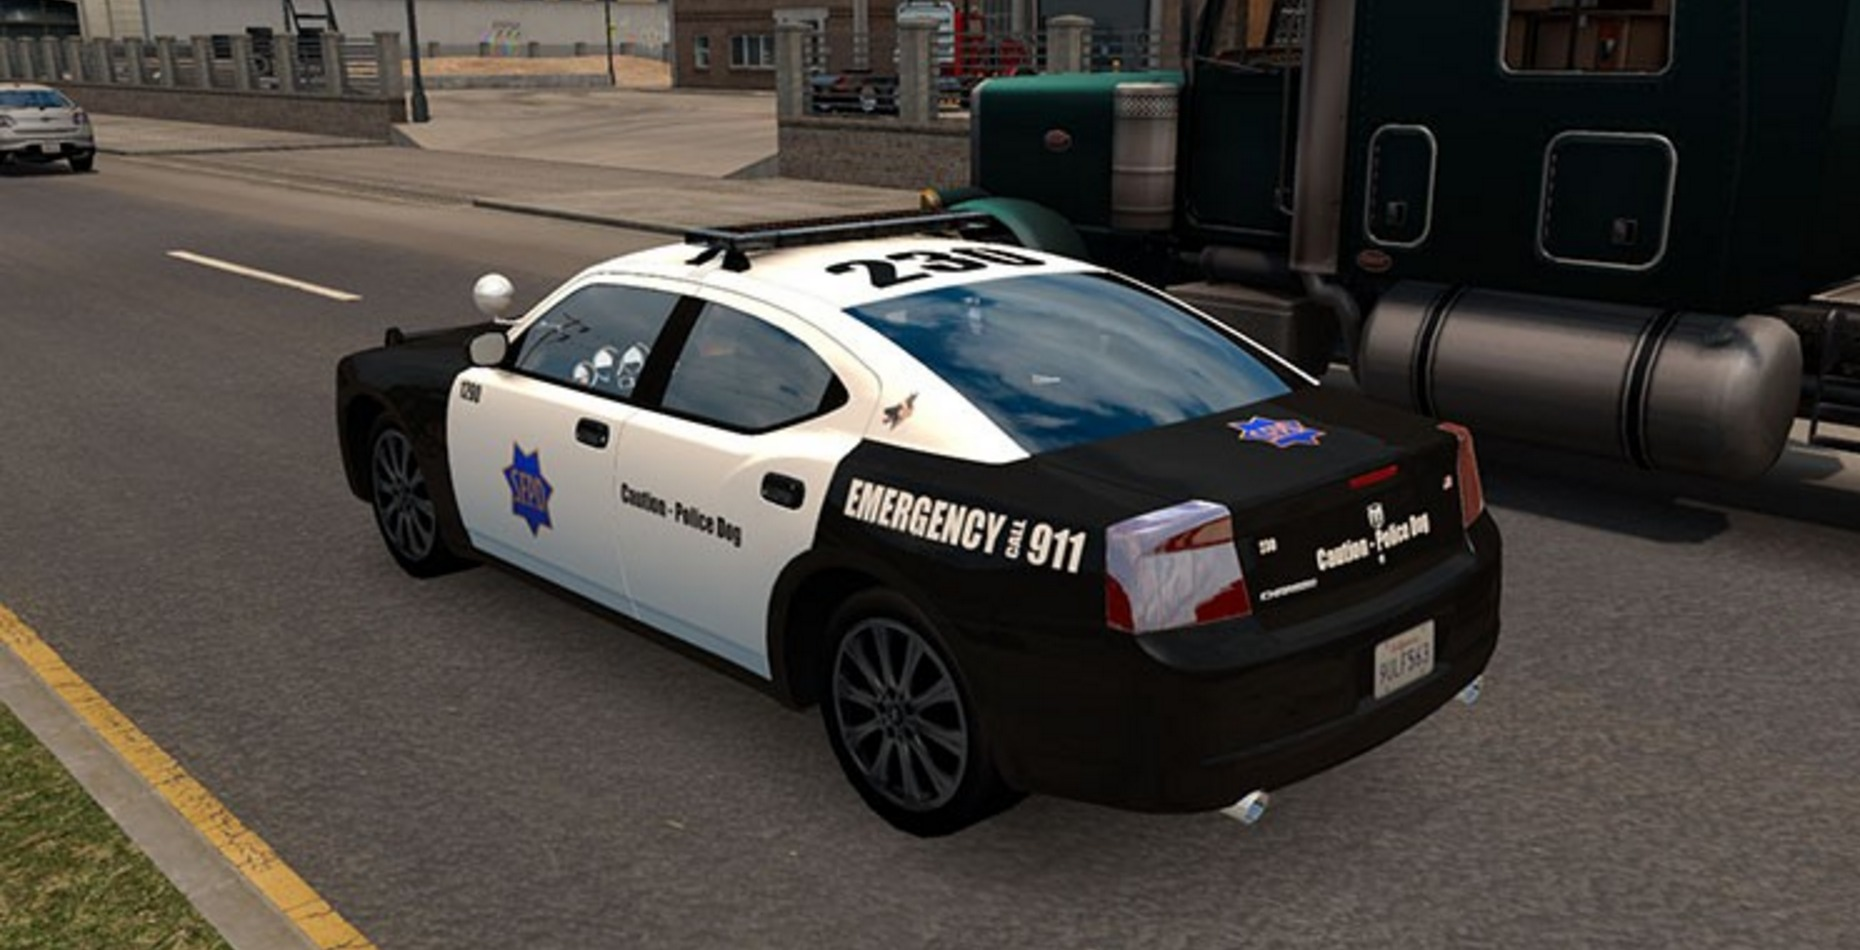 ai-police-dodge-charger-for-ats.jpeg